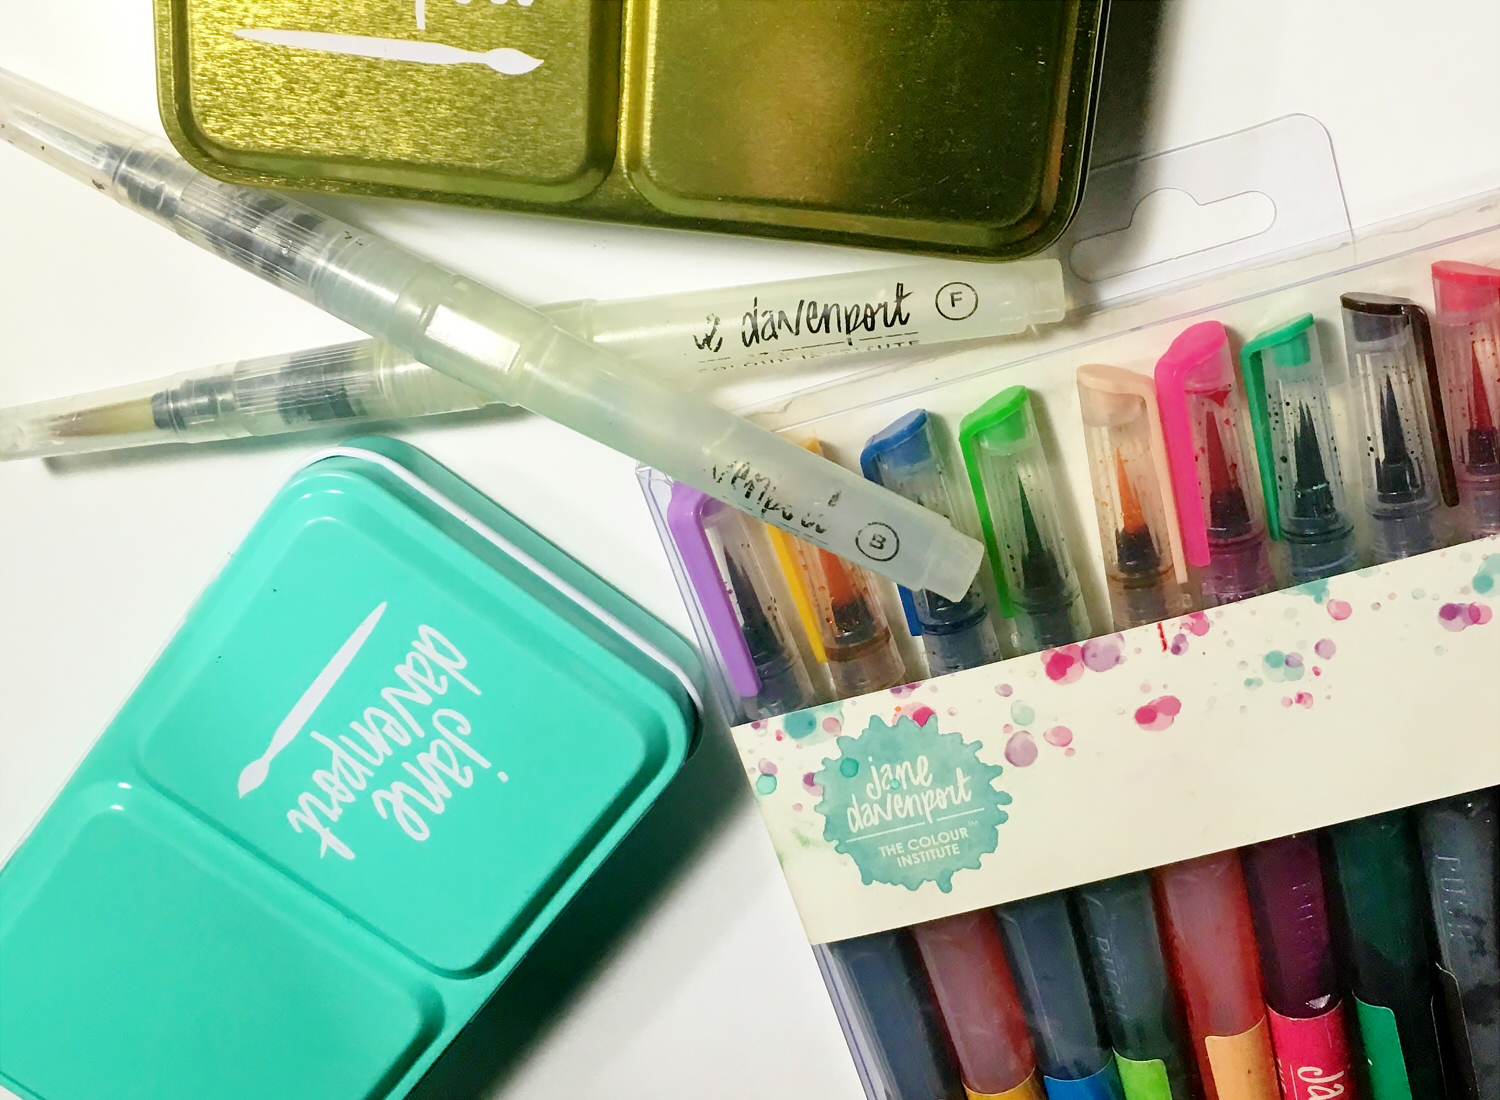 mermaid-marker-review-emk-wright-wwwdotmadebyemkdotcom-no-affiliation-with-jane-davenport-or-mermaid-marker-related-products-9.jpeg